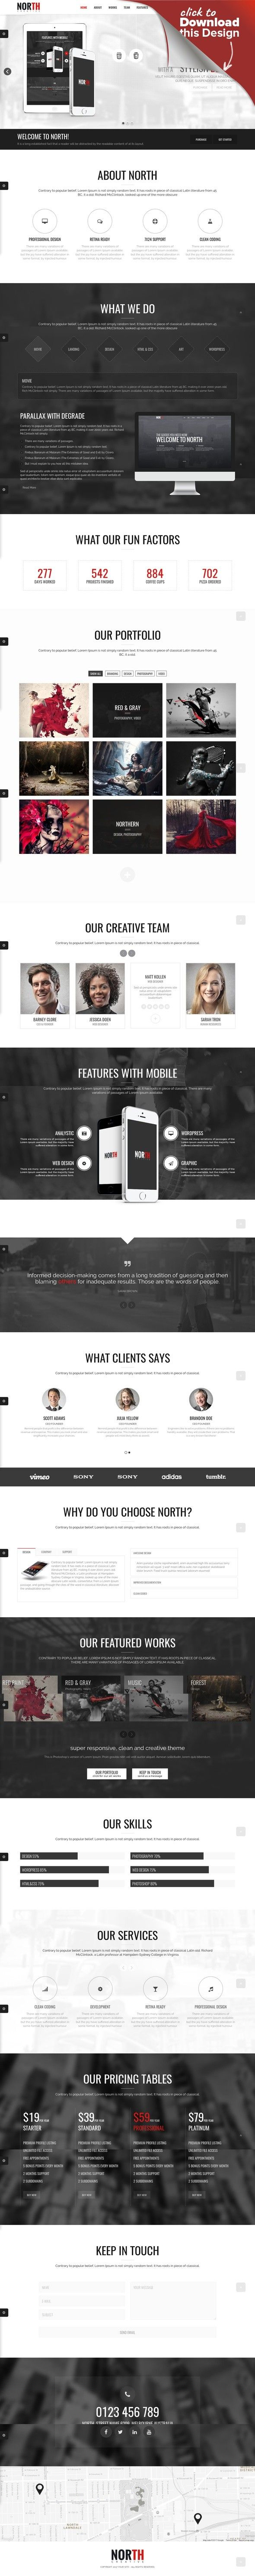 North - One Page Parallax WordPress Theme | Pricing table, Wordpress ...